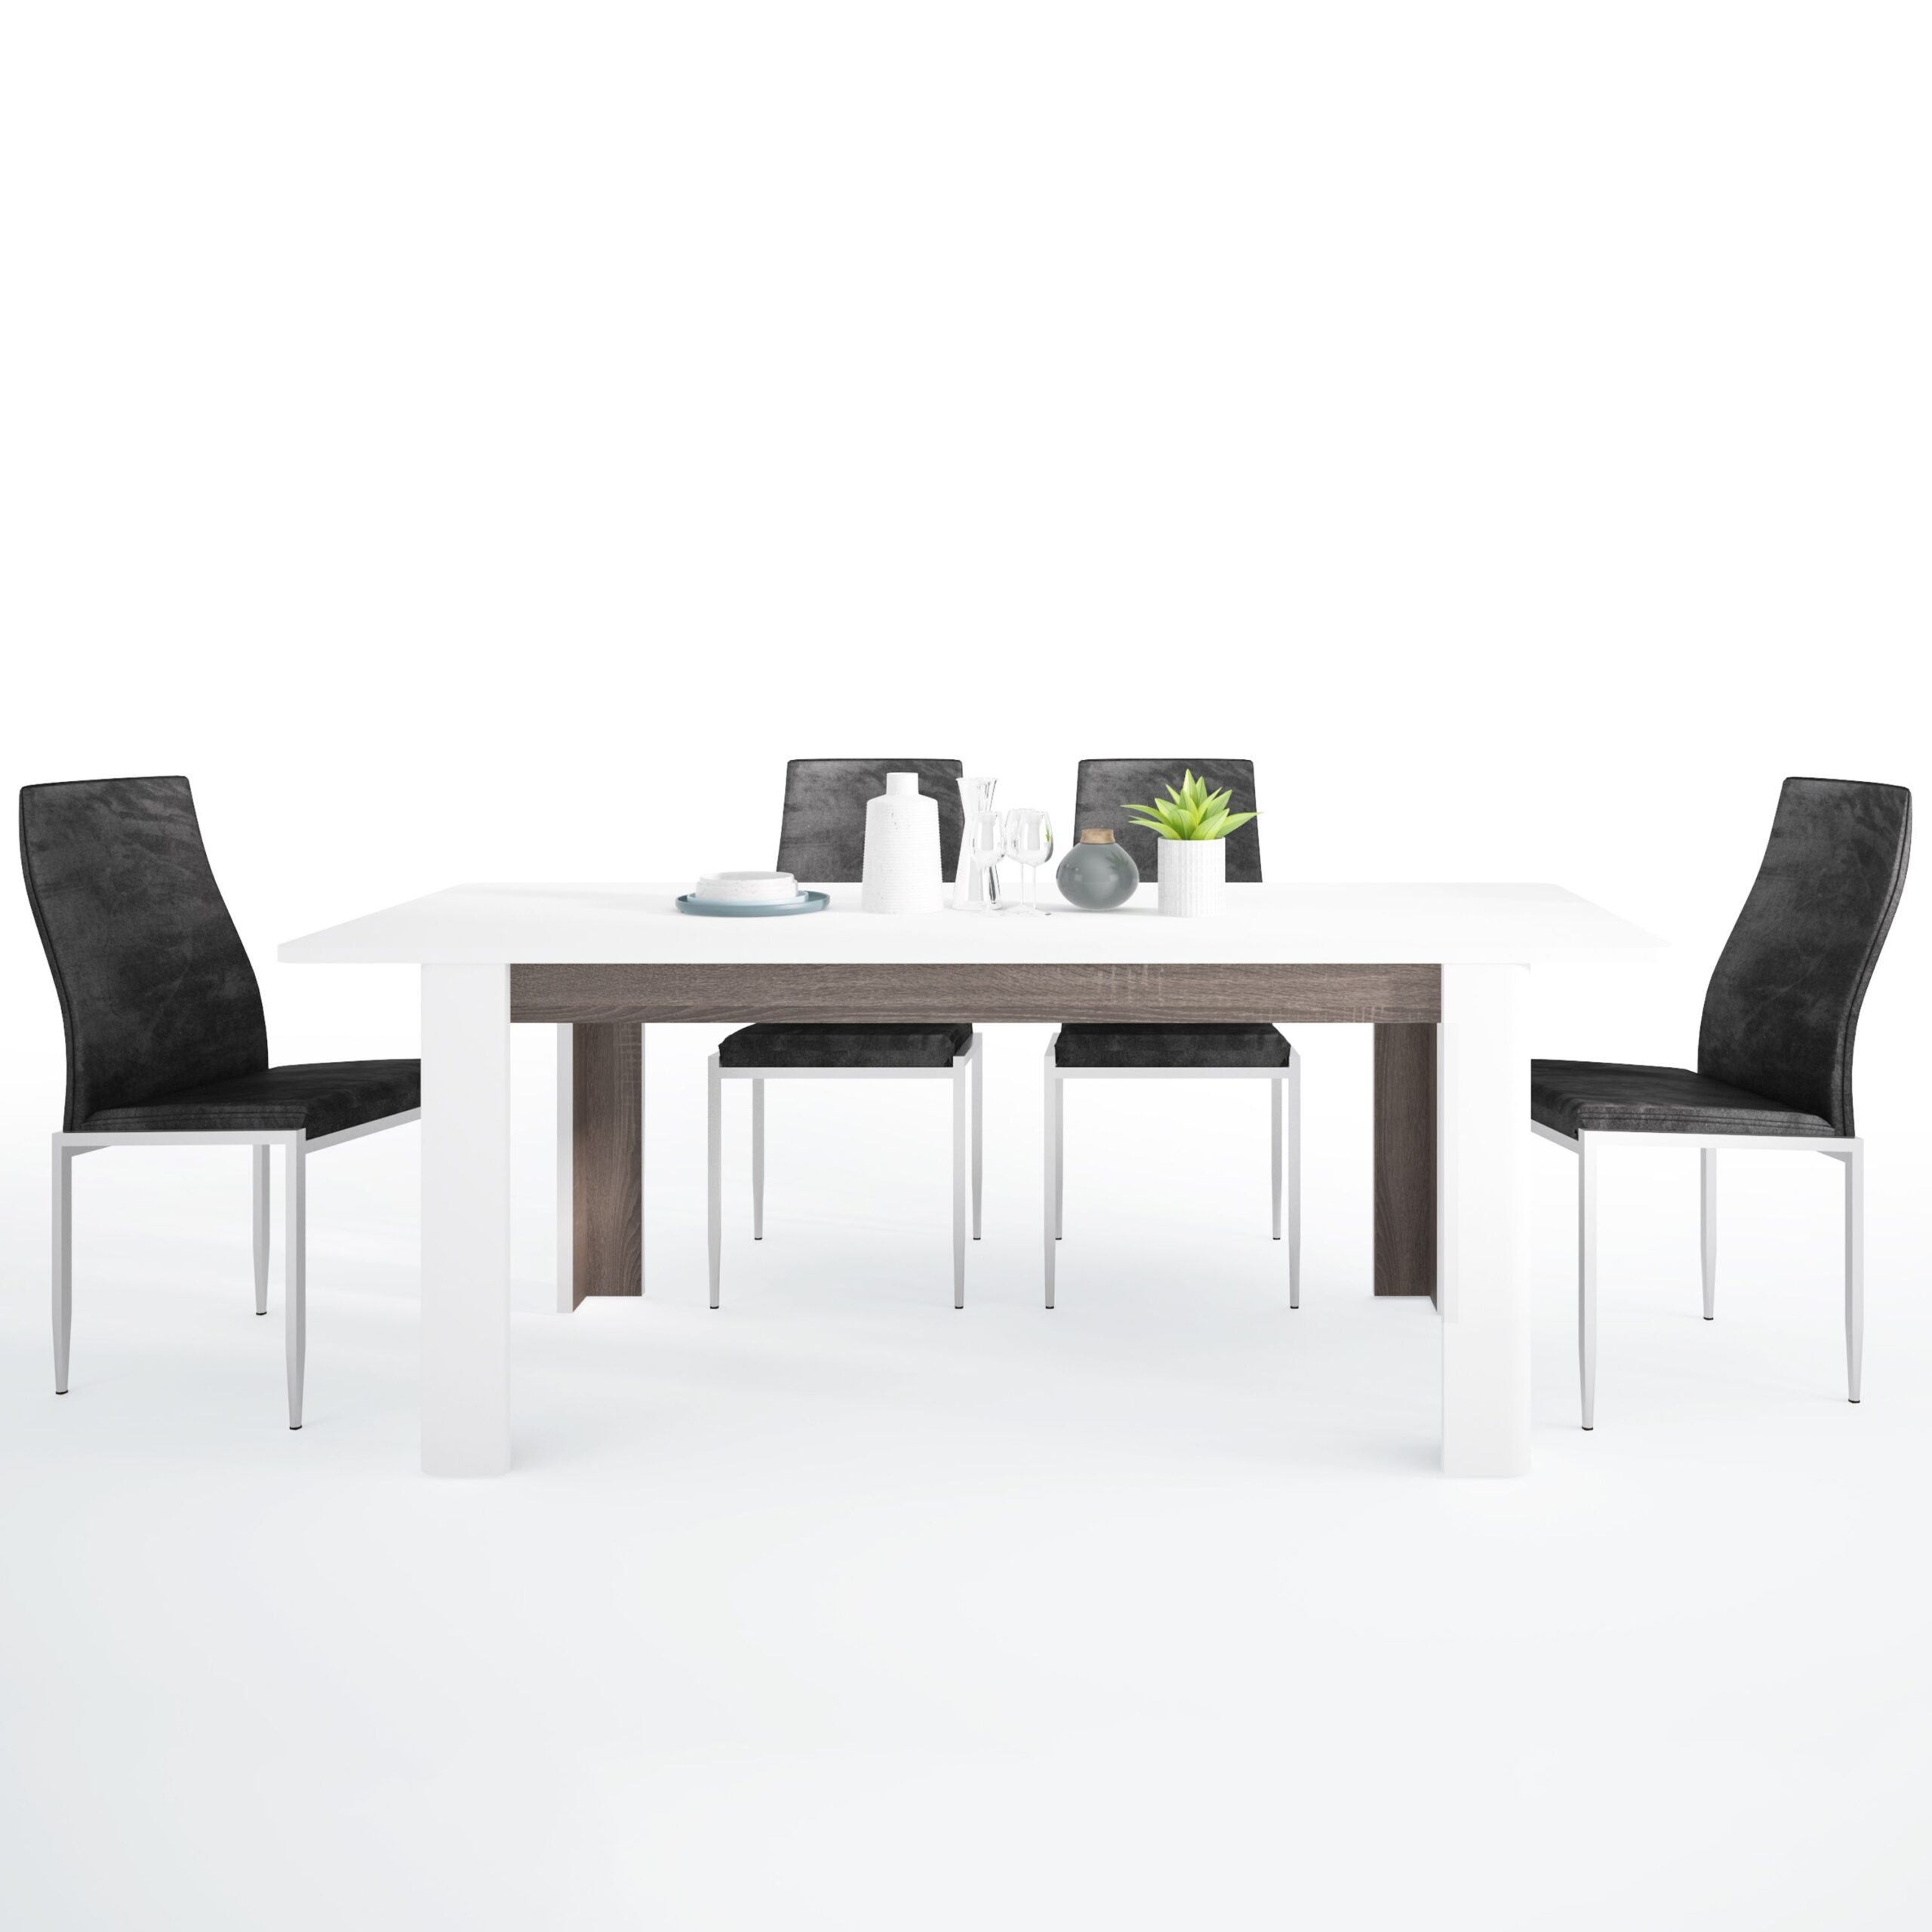 Seals Dining set package Seals Living Extending Dining Table + 6 Lillie High Back Chair Black